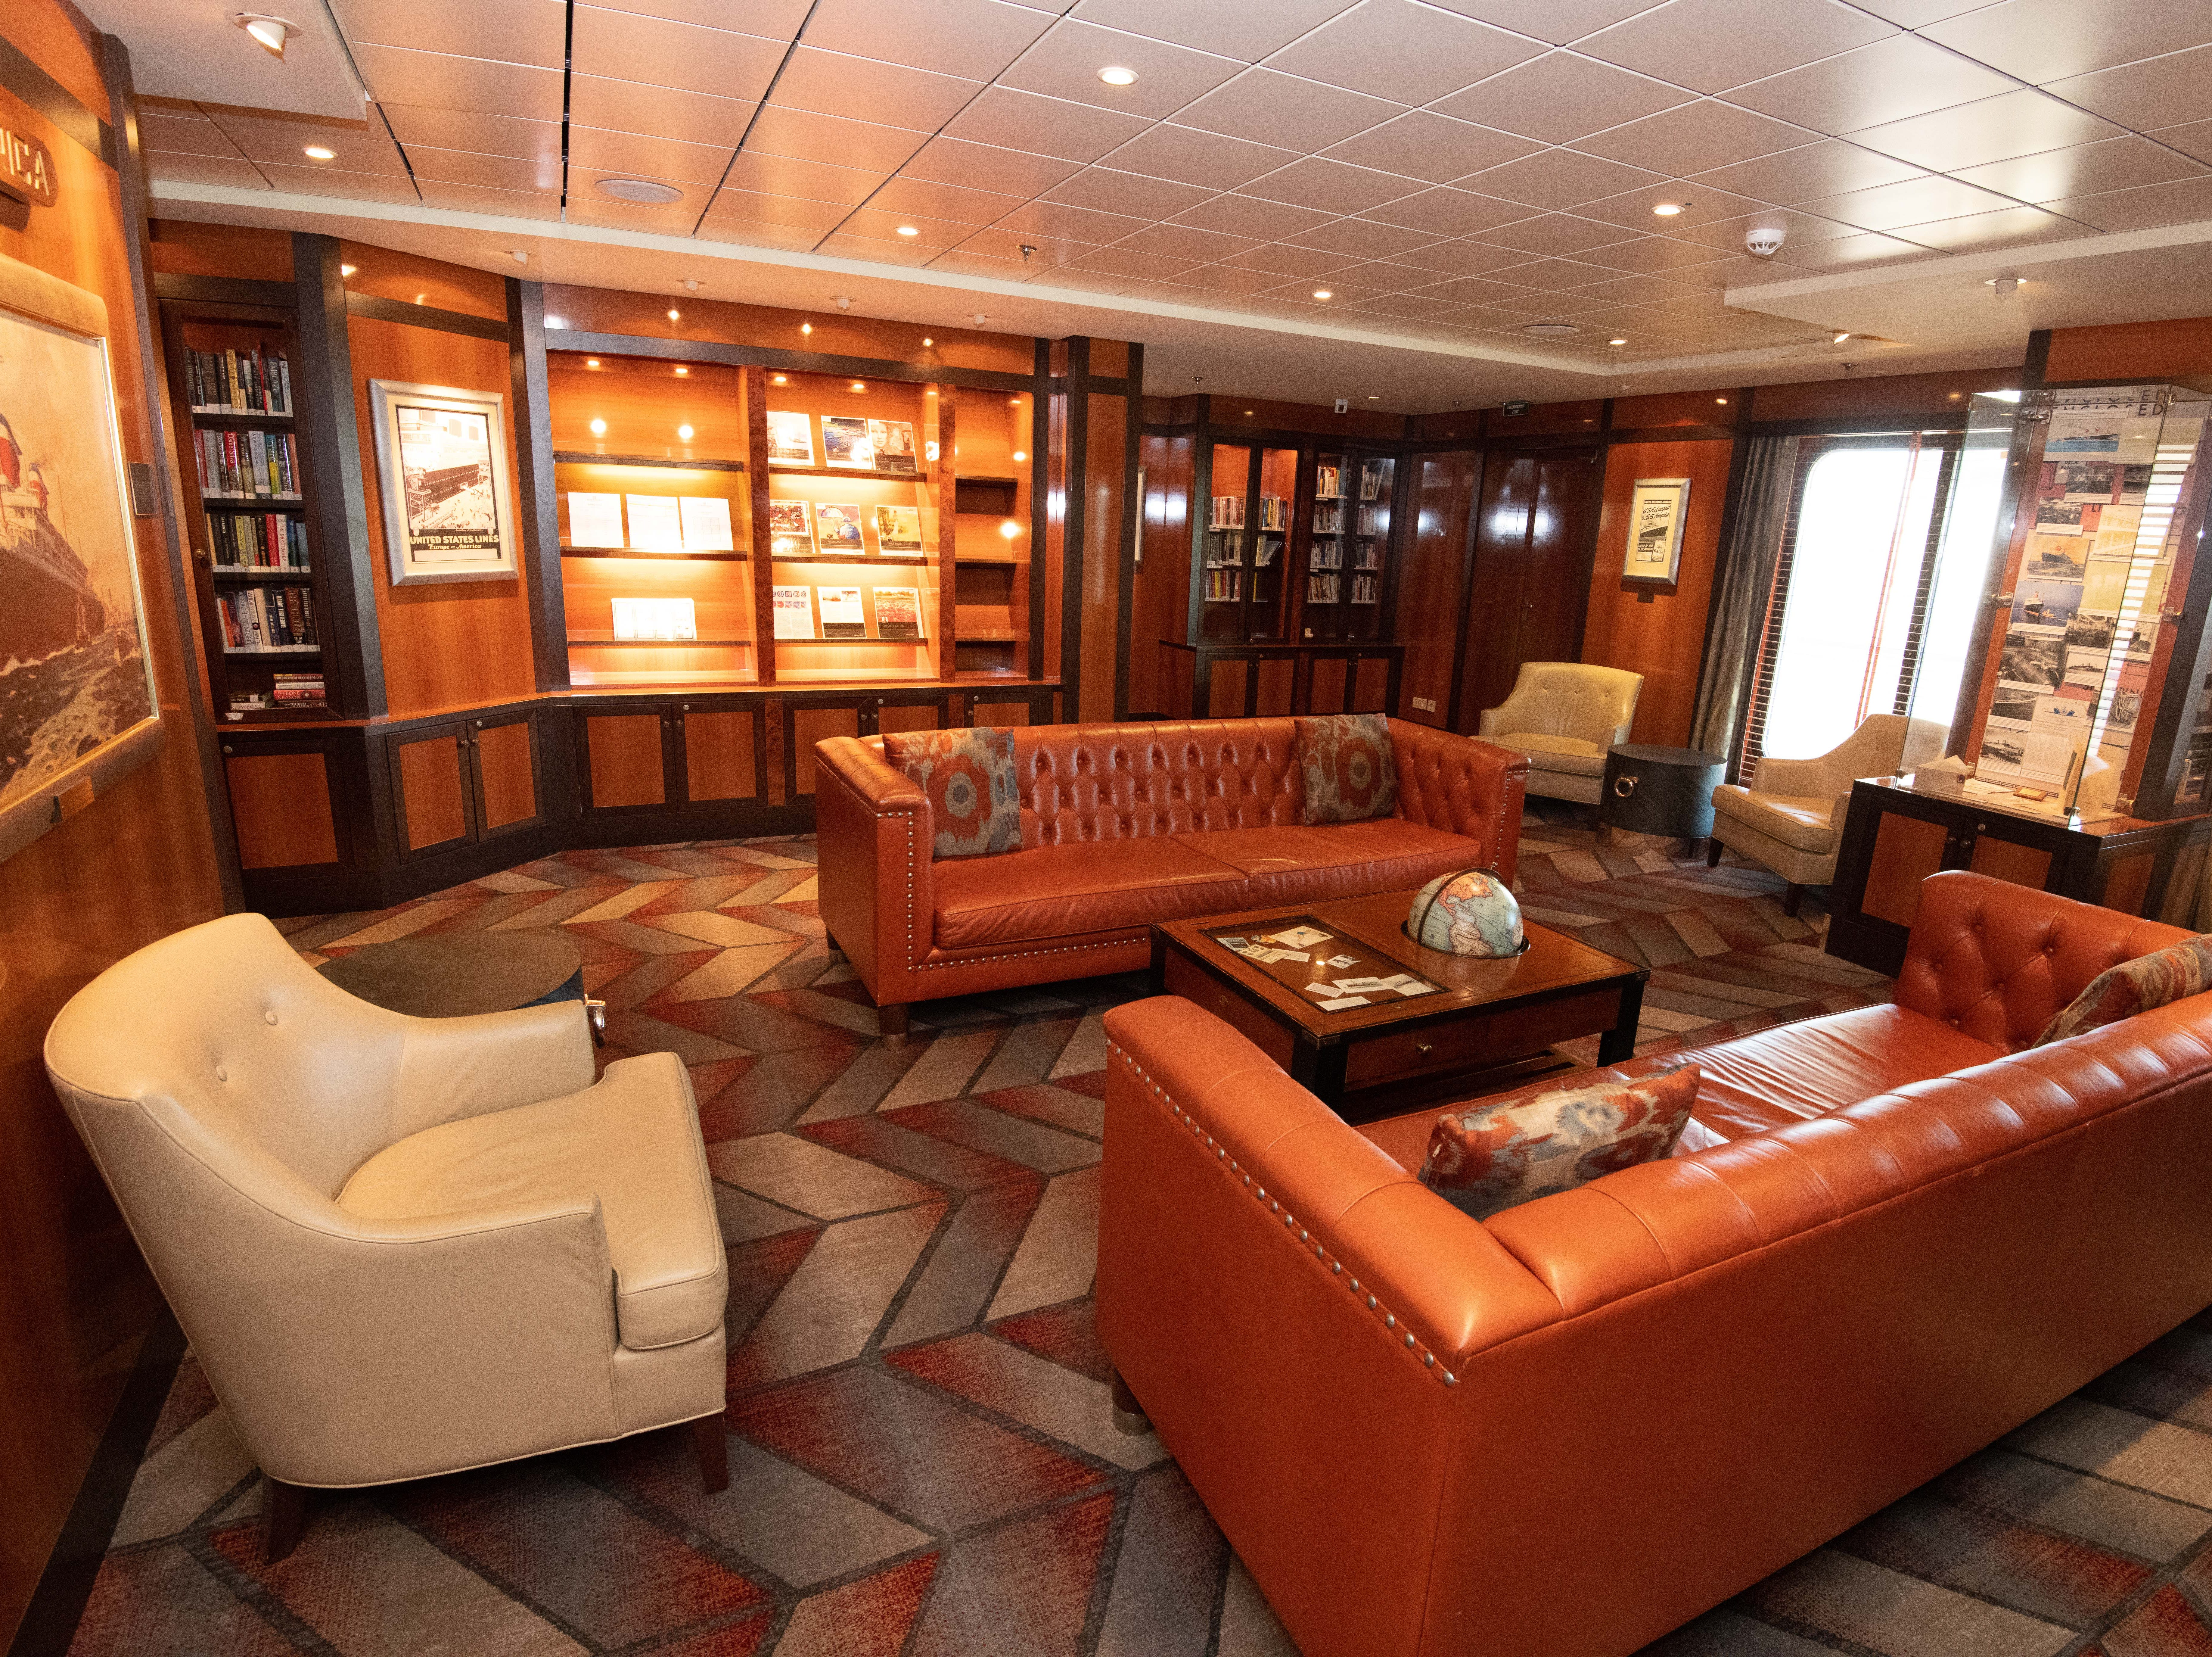 The SS America Library features comfortable leather chairs and sofas.